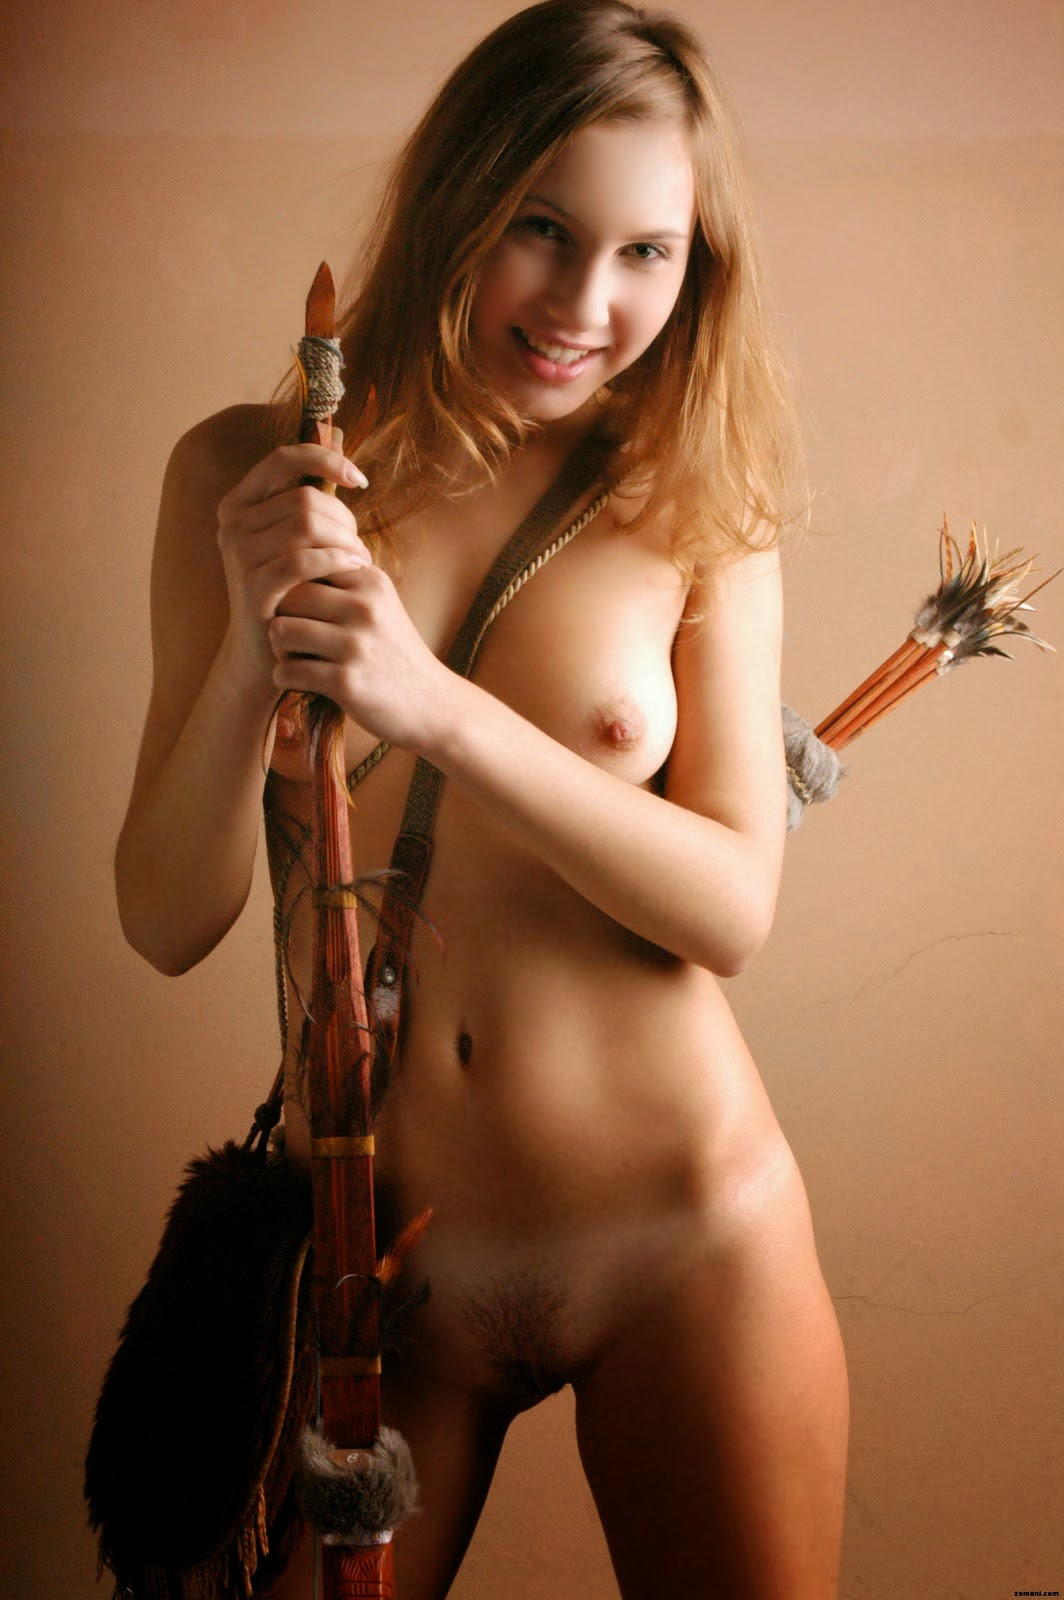 Short sexy naked women